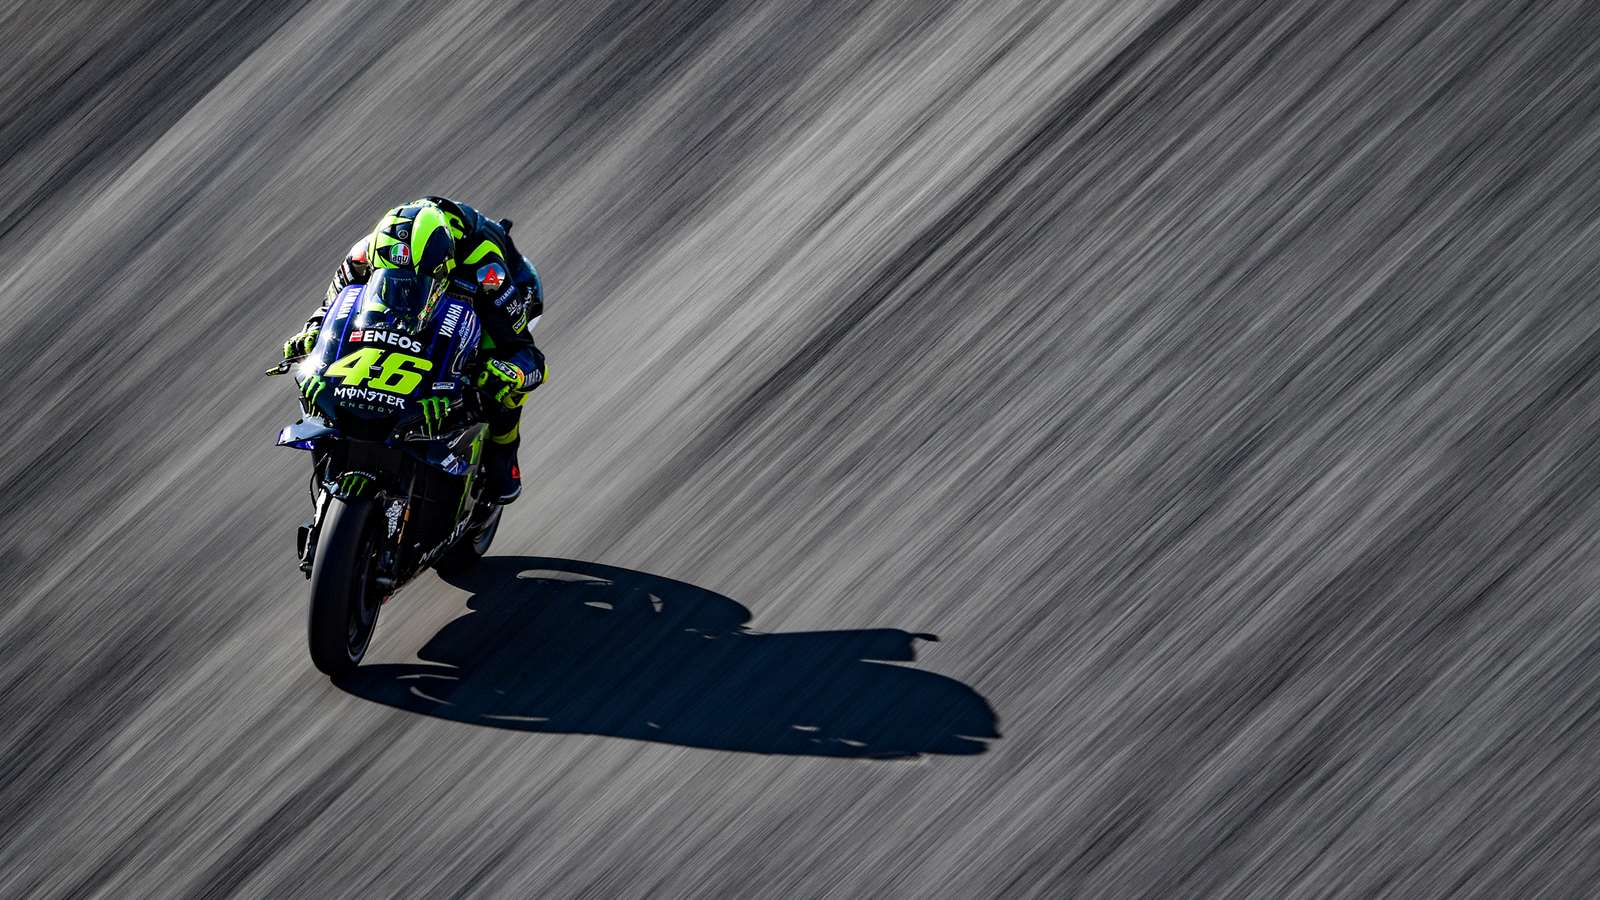 Will Valentino Rossi ever win another MotoGP title?